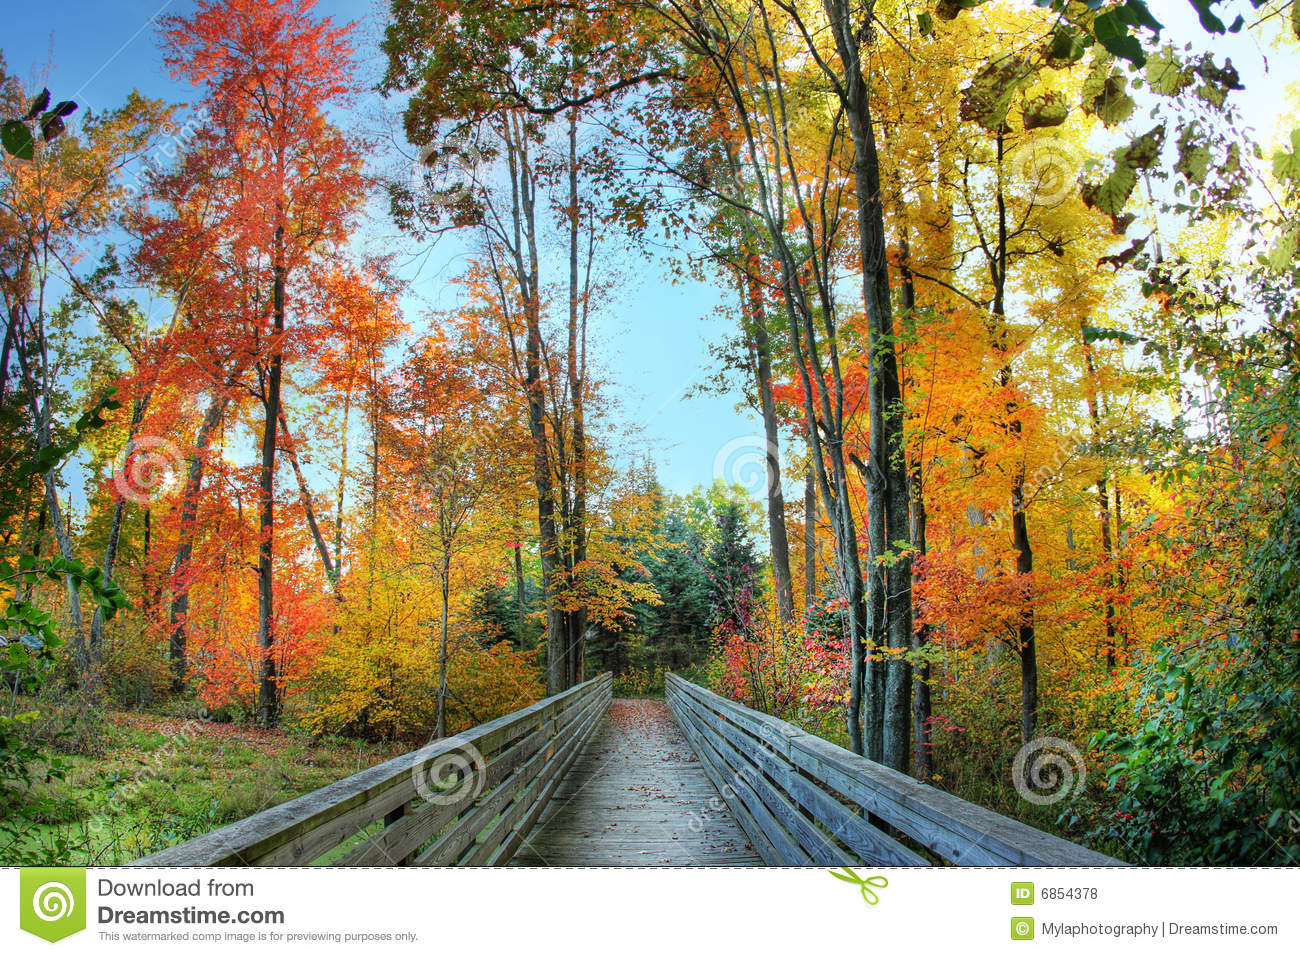 Beautiful fall path to the forest with colorful trees on each side